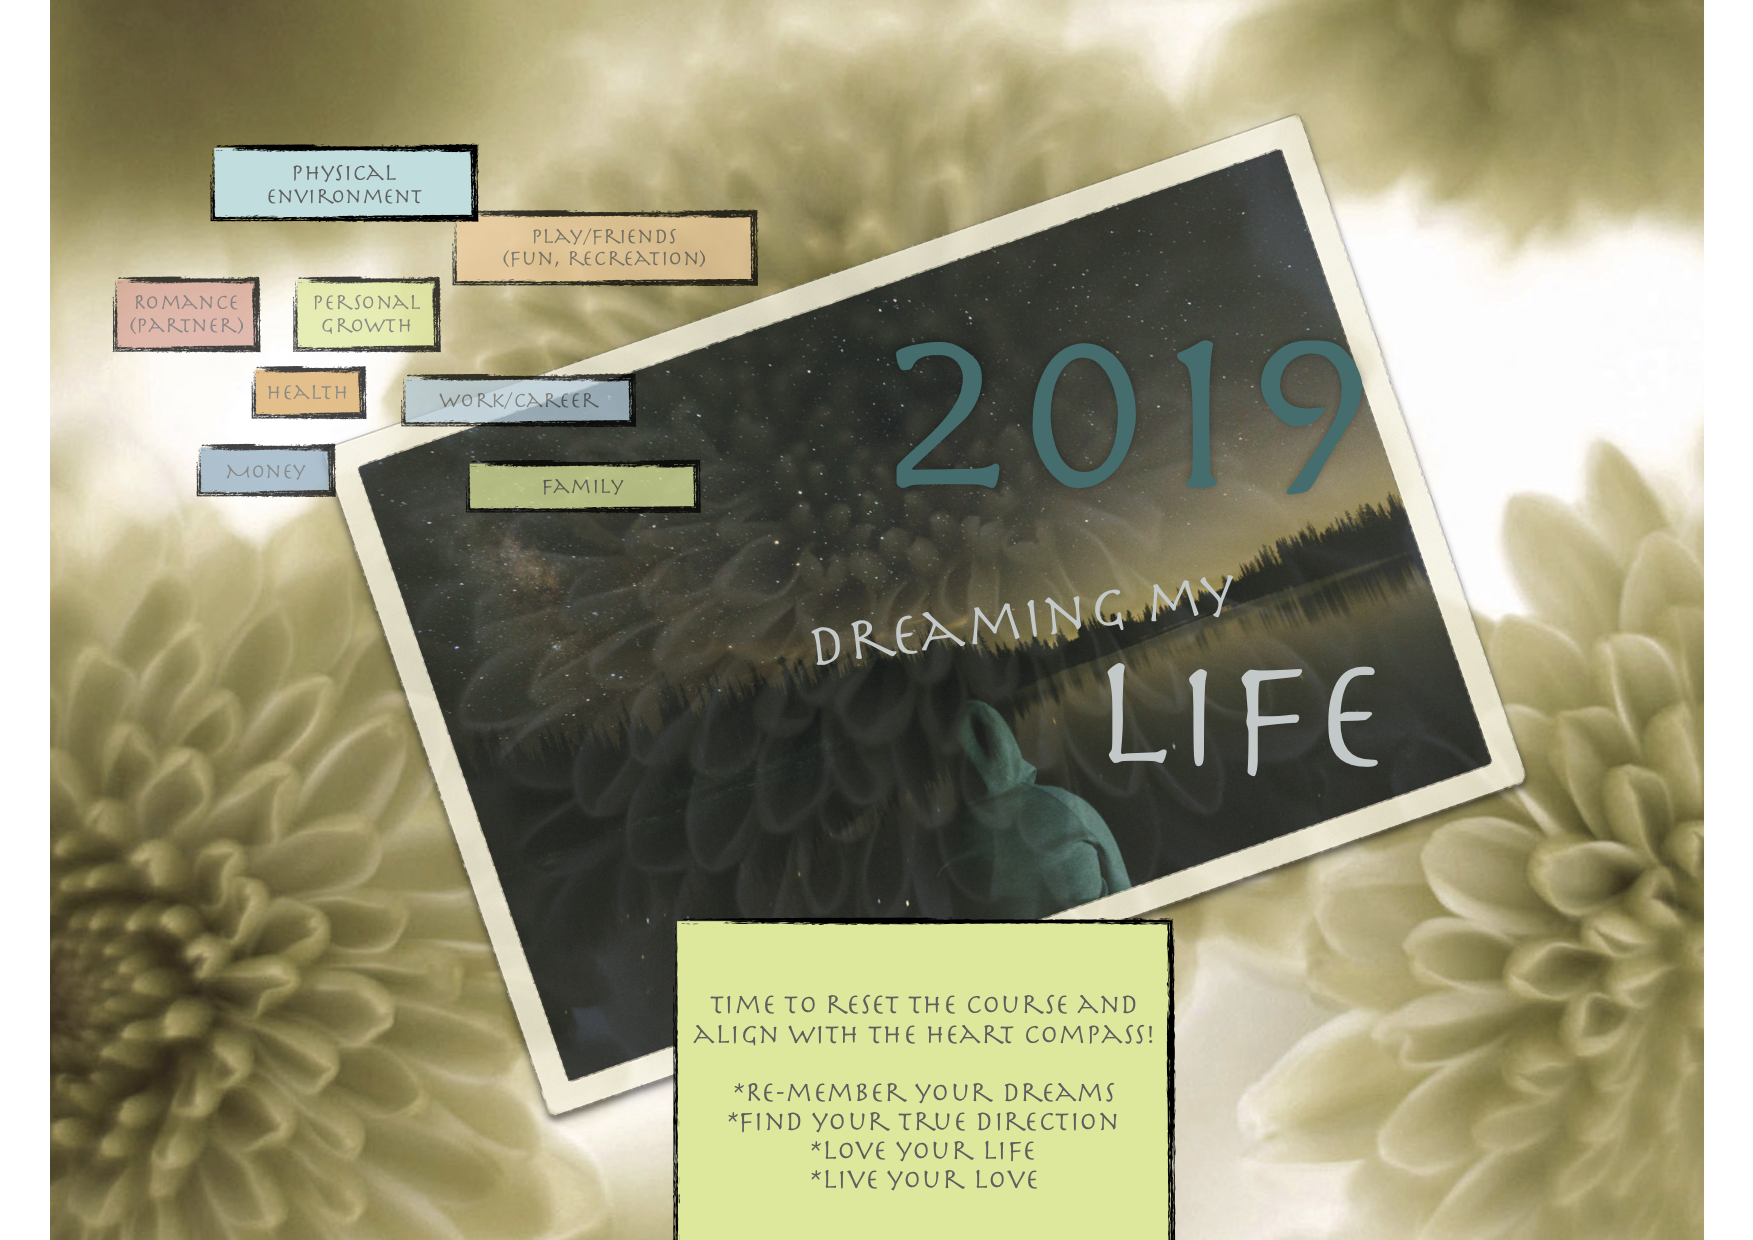 2019 dream my life cover.png